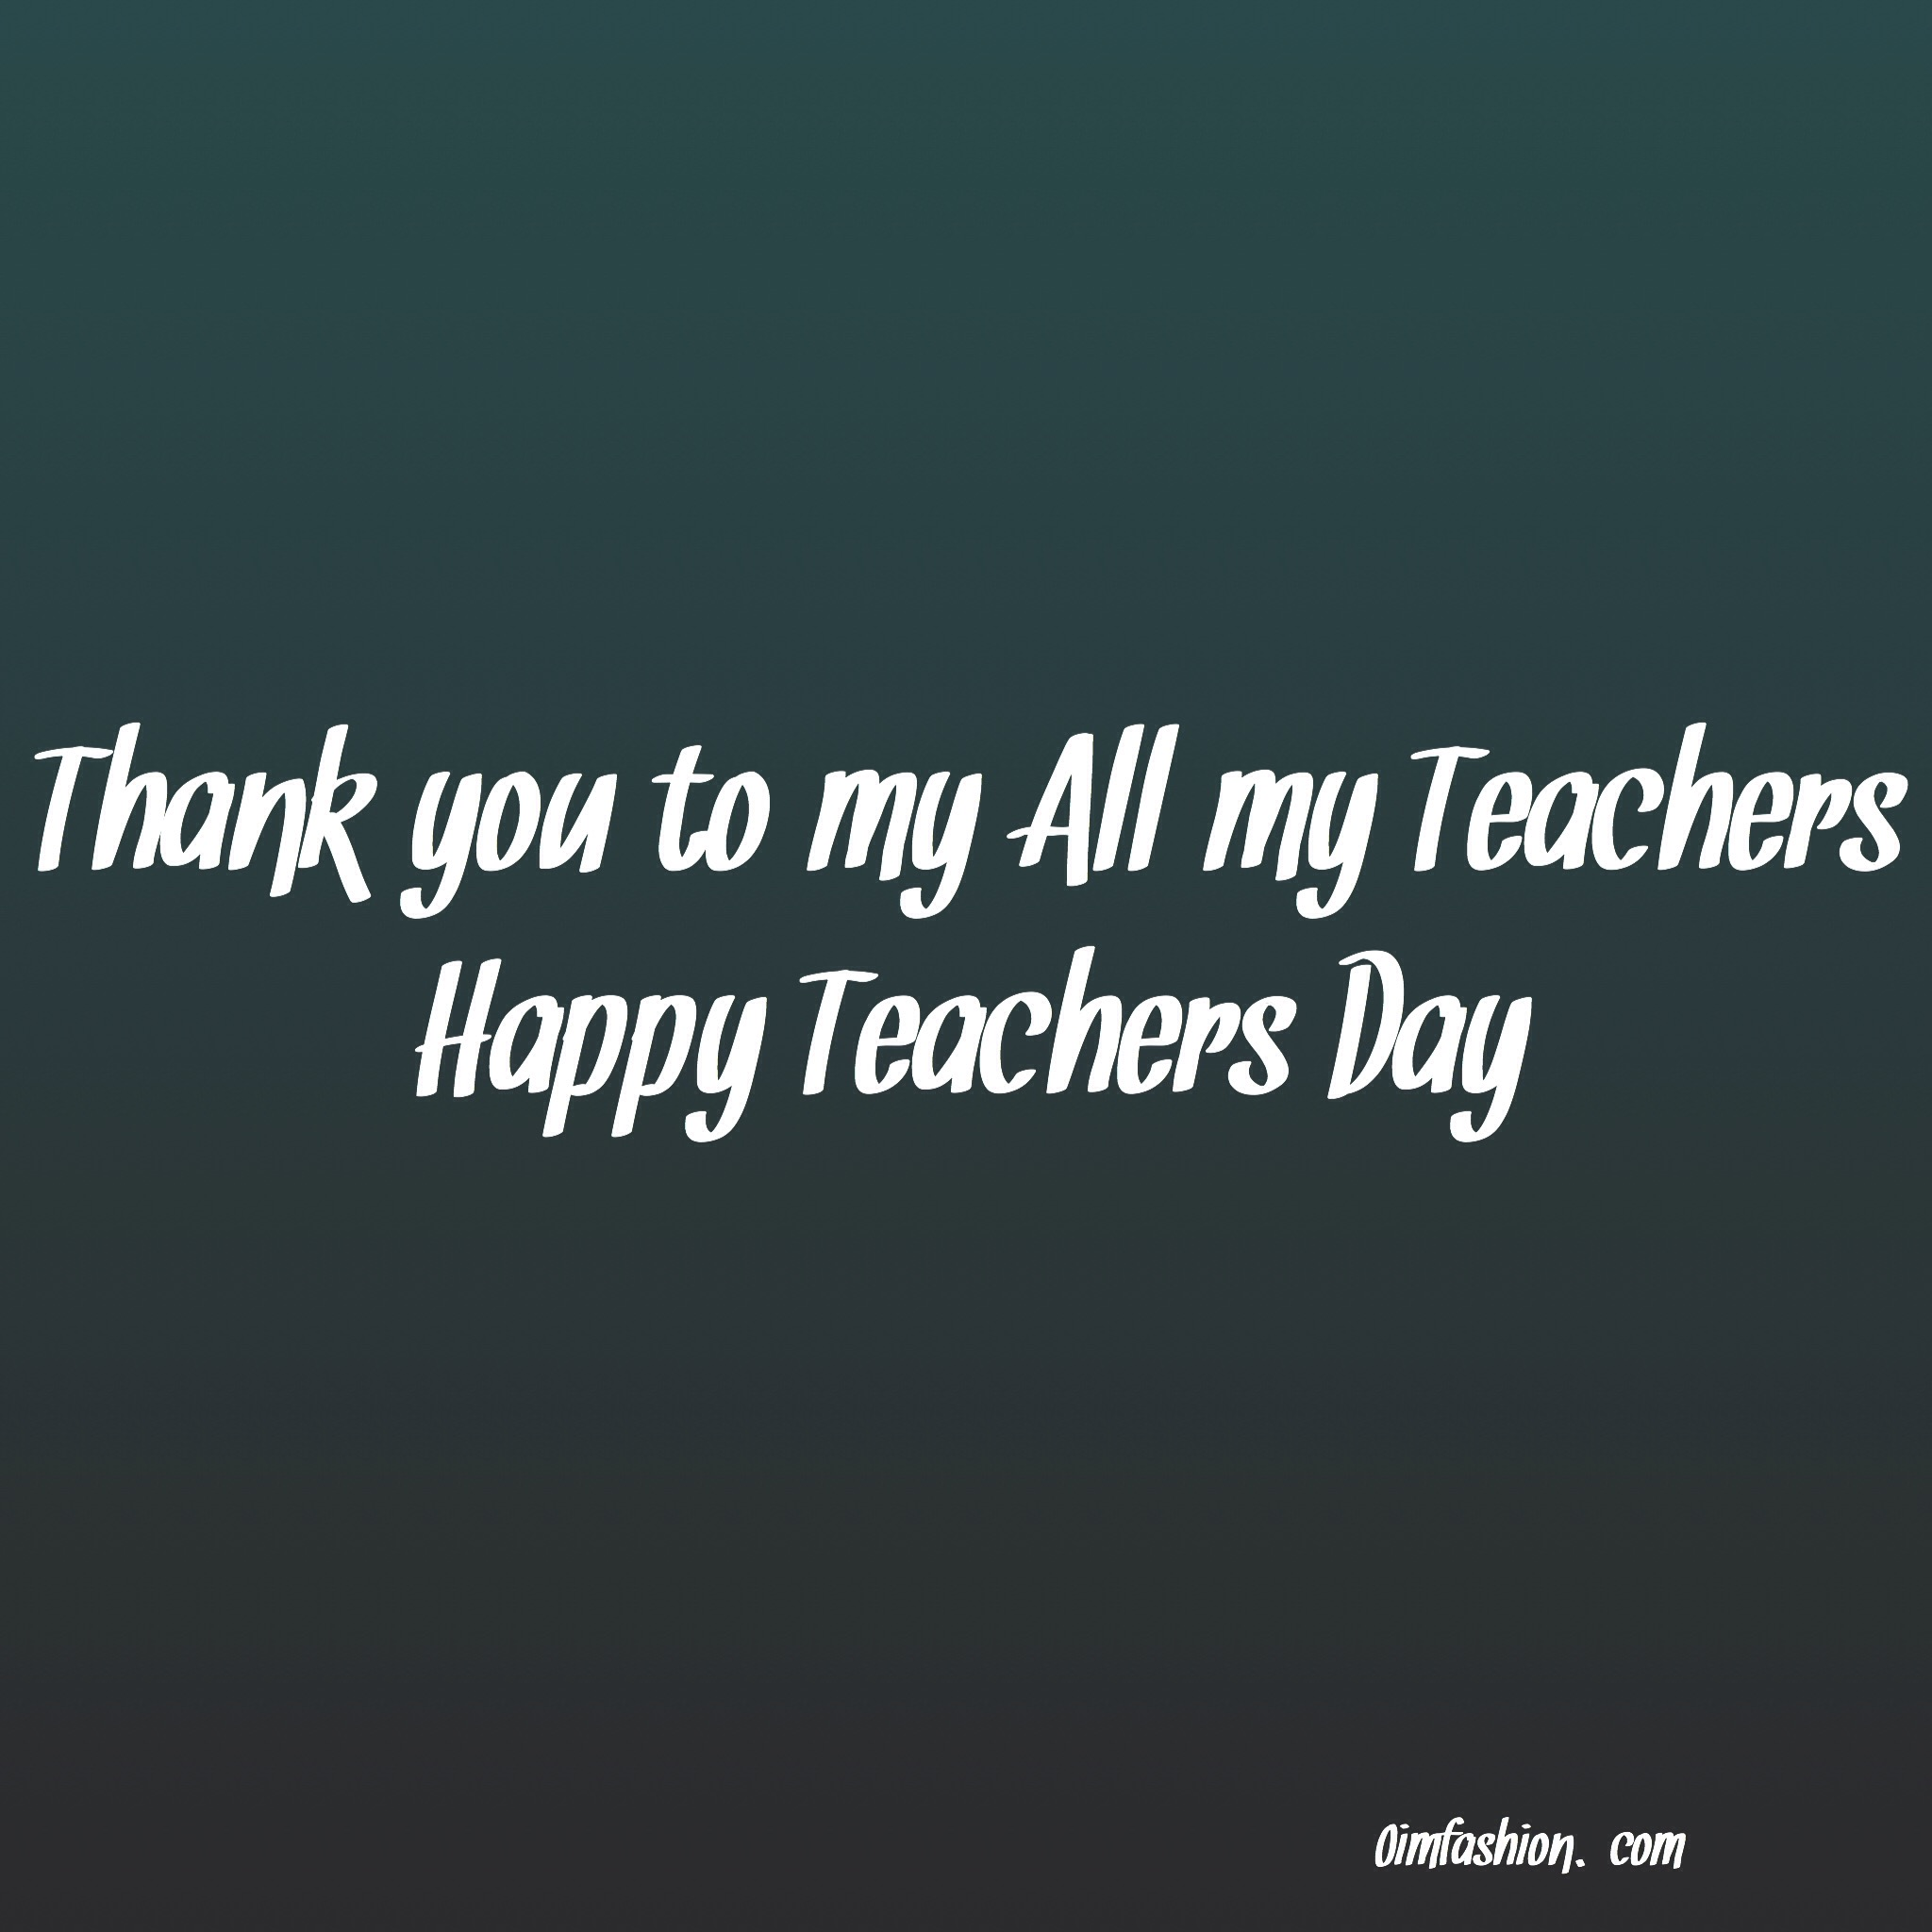 30 hd happy teachers day wallpapers thecheapjerseys Choice Image